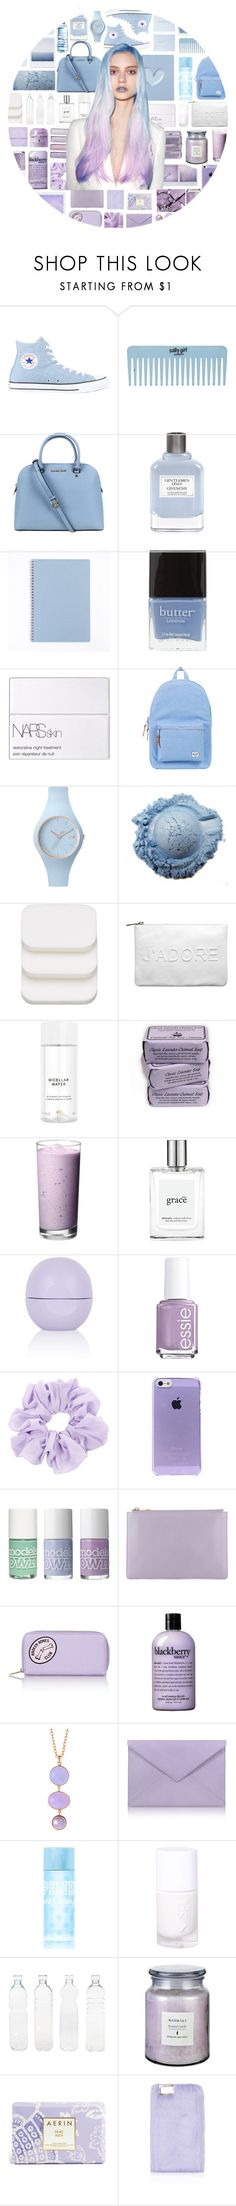 """Ombre Hair"" by stelbell ❤ liked on Polyvore featuring Converse, Michael Kors, Givenchy, Butter London, NARS Cosmetics, Herschel Supply Co., Ice-Watch, COVERGIRL, Miss Selfridge and H&M"